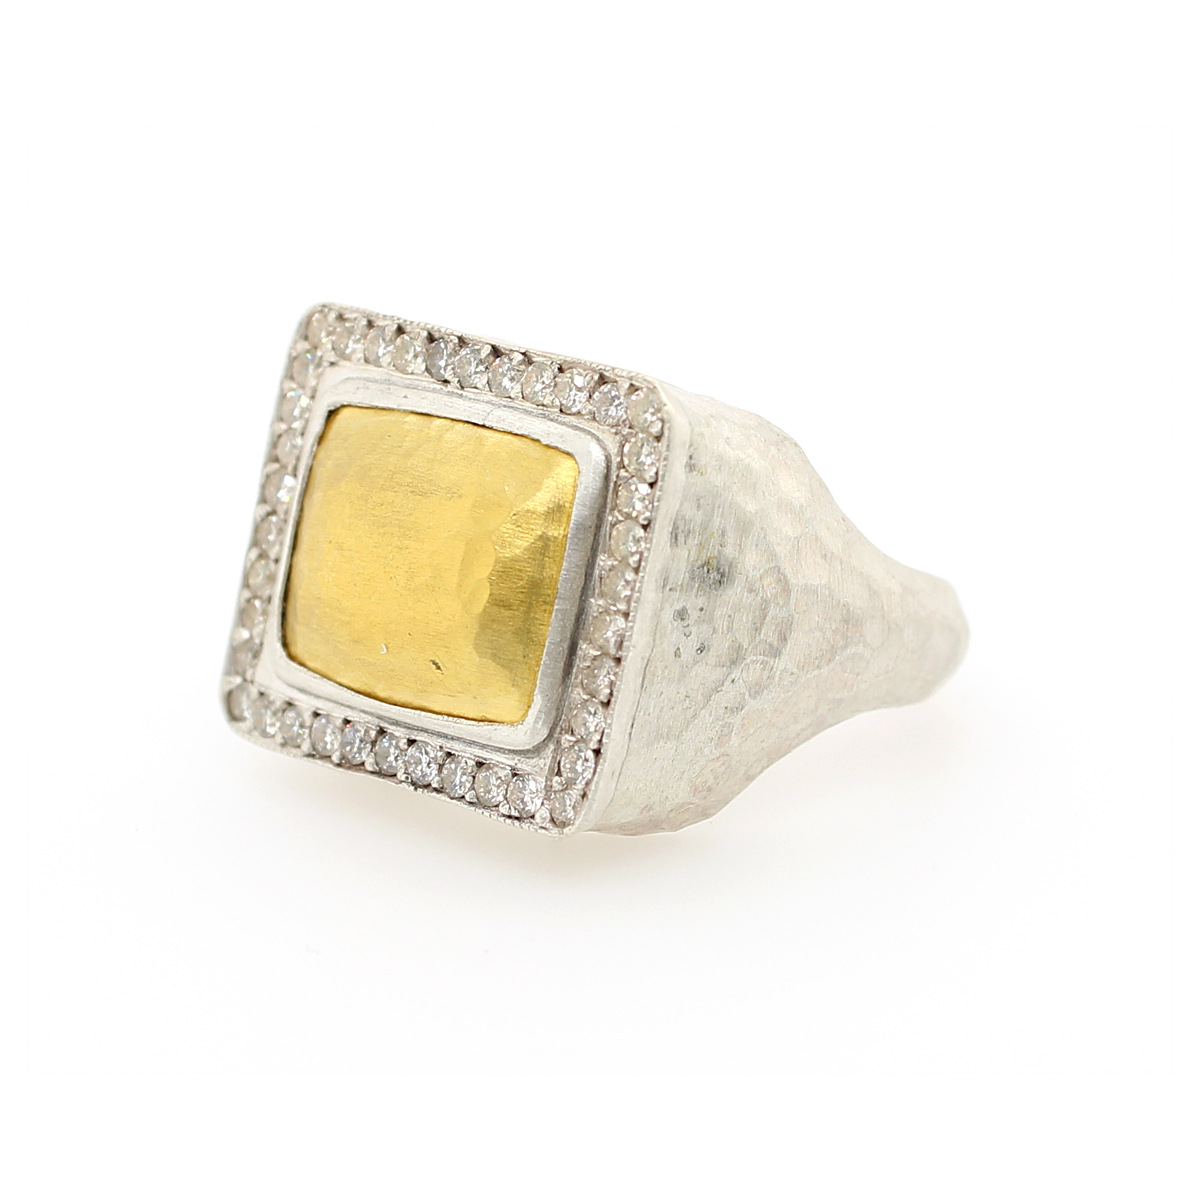 "Lika behar 24 Karat Yellow Gold and Silver Diamond ""Pompei"" Rectangular Ring"